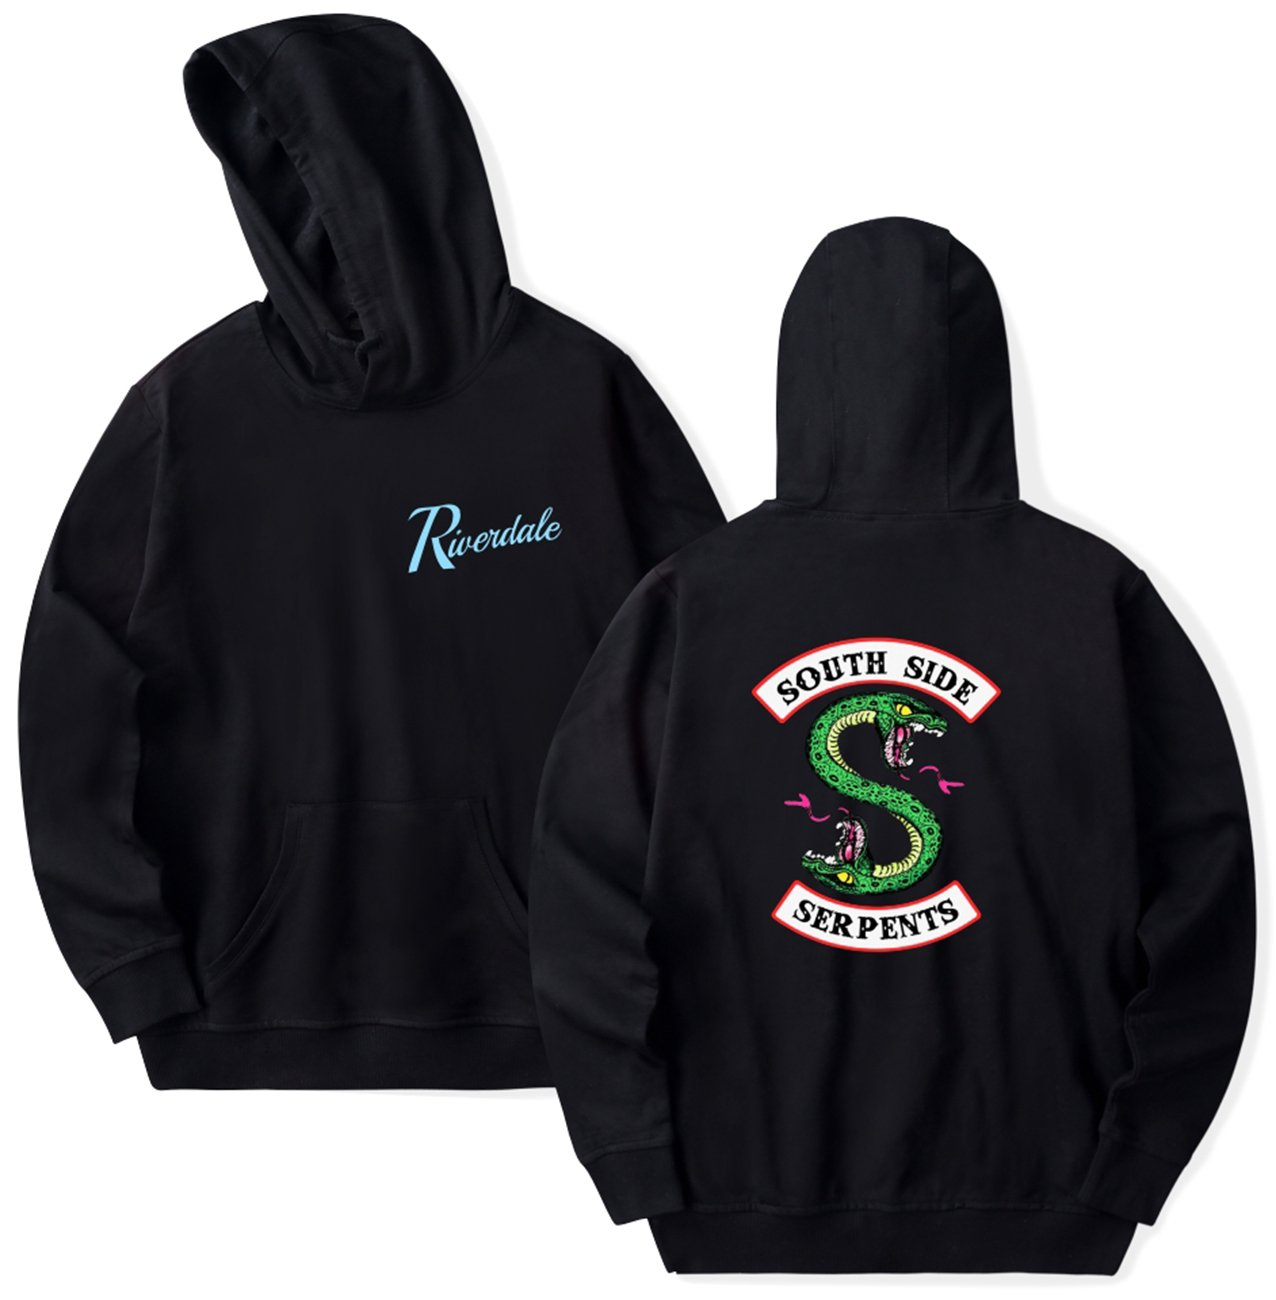 SERAPHY Unisex Hoodie Riverdale Southside Serpents Sweatshirt Black S by SERAPHY (Image #2)